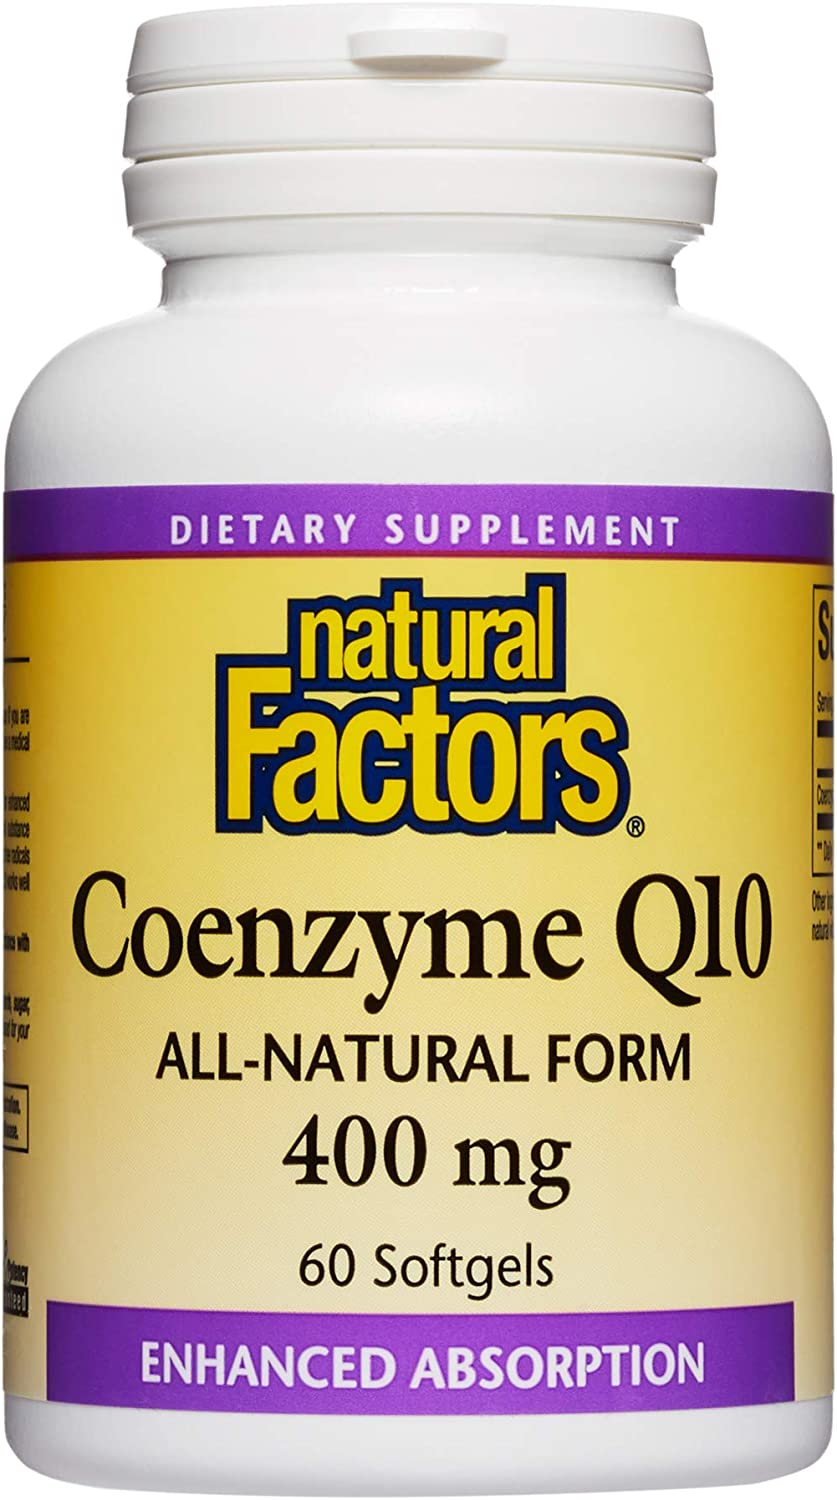 Natural Factors Coenzyme Q10 Selling and store selling 400mg Energy for CoQ10 Supplement